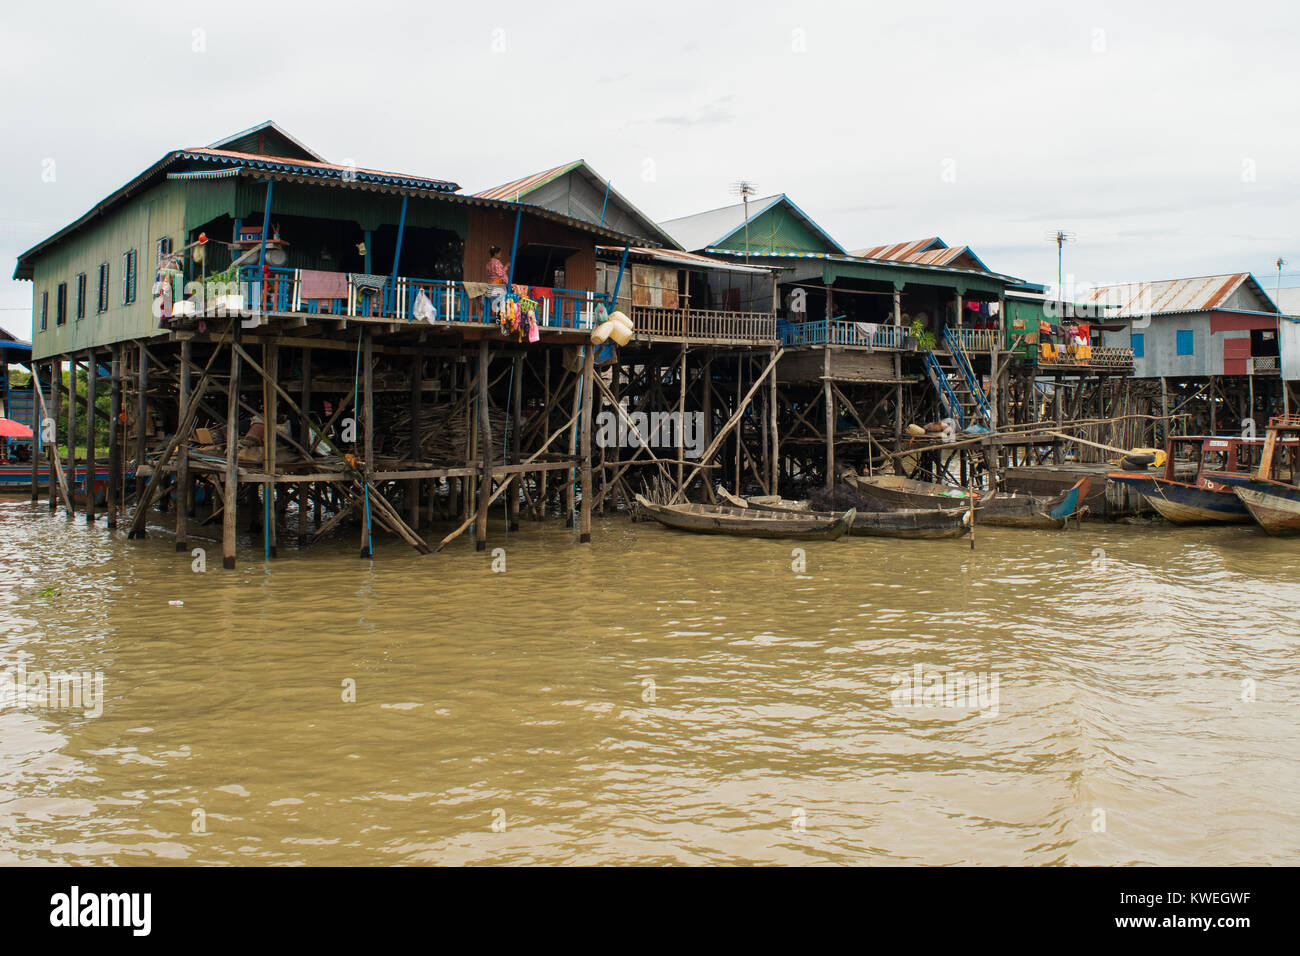 Wood and metal settlement, group of houses buildings on stilts, Kampong Phluk floating village, Tonle Sap Lake, - Stock Image